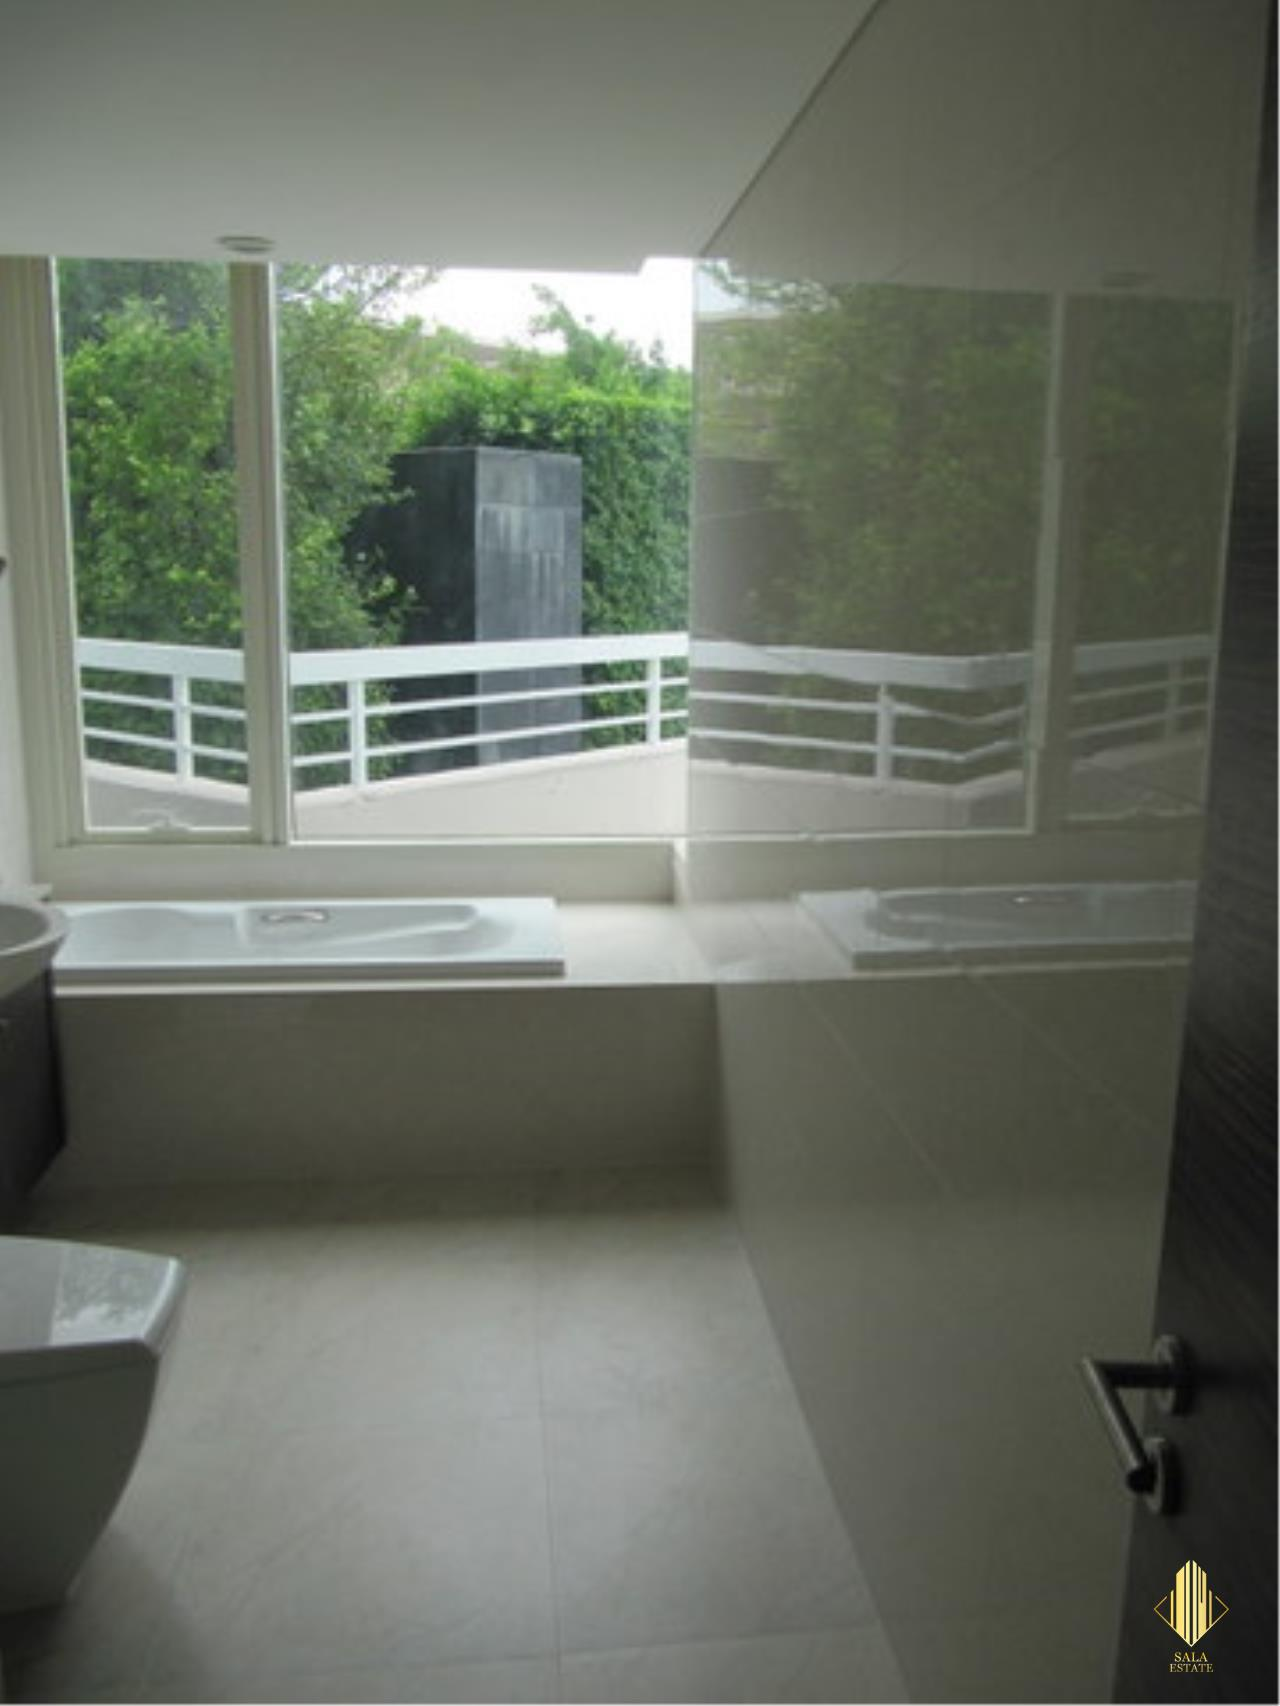 SALA ESTATE Agency's WATERMARK CHAOPHRAYA RIVER – RIVERSIDE-NEAR ICON SIAM,豪华公寓,河景房, 3卧3卫,家具齐全 3